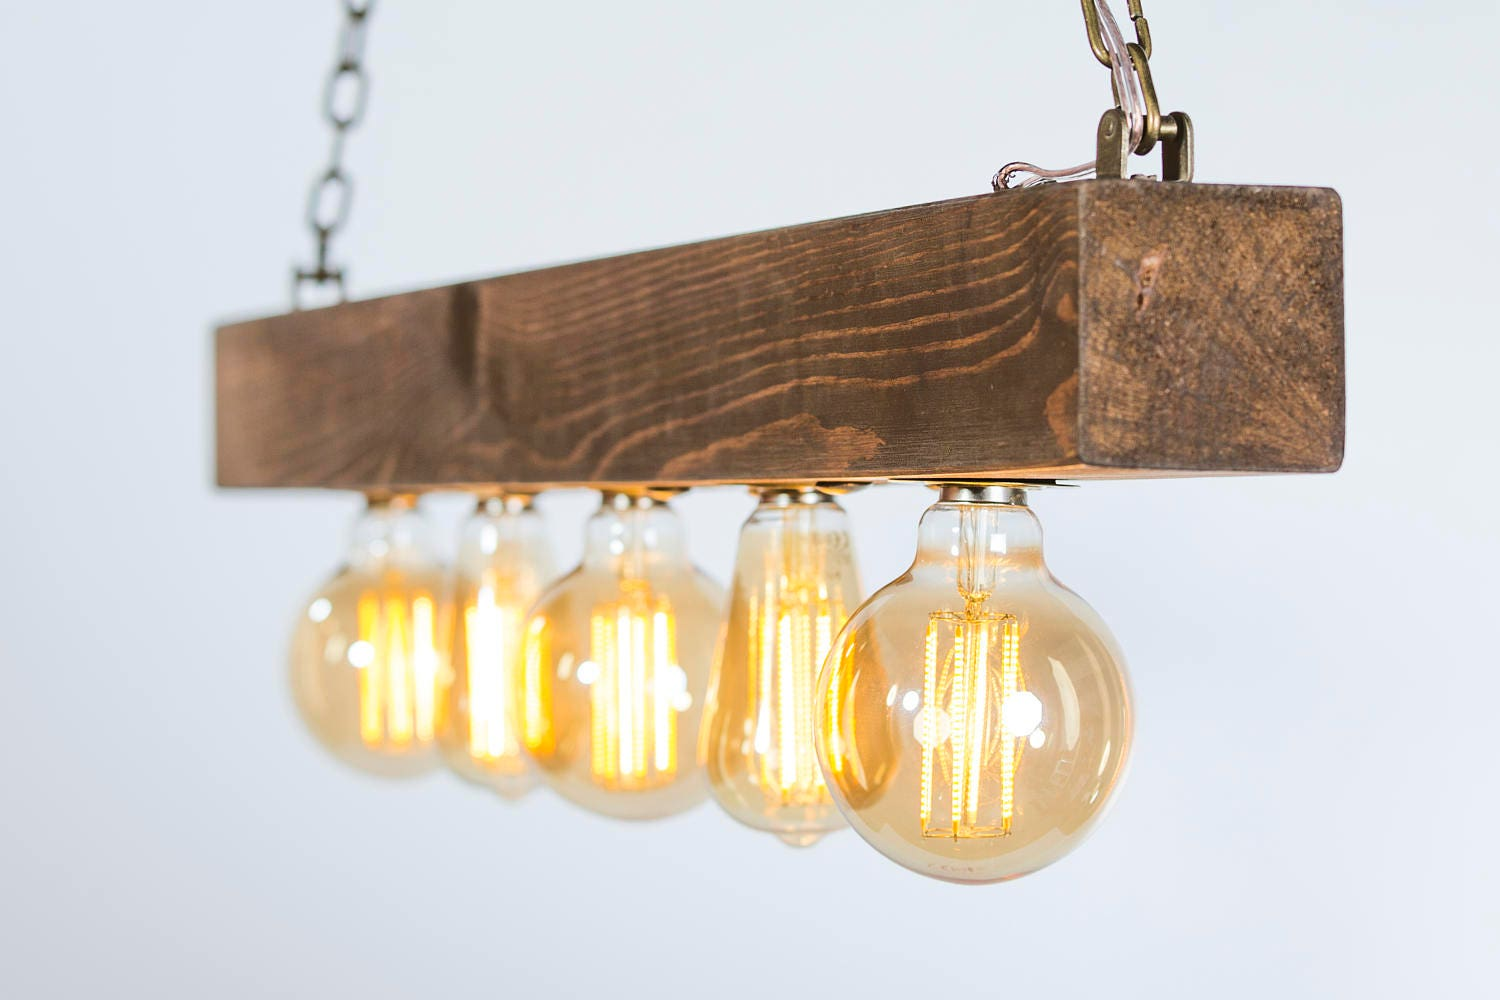 Ceiling Light Wood Fixture Reclaimed Wood Light Rustic Etsy